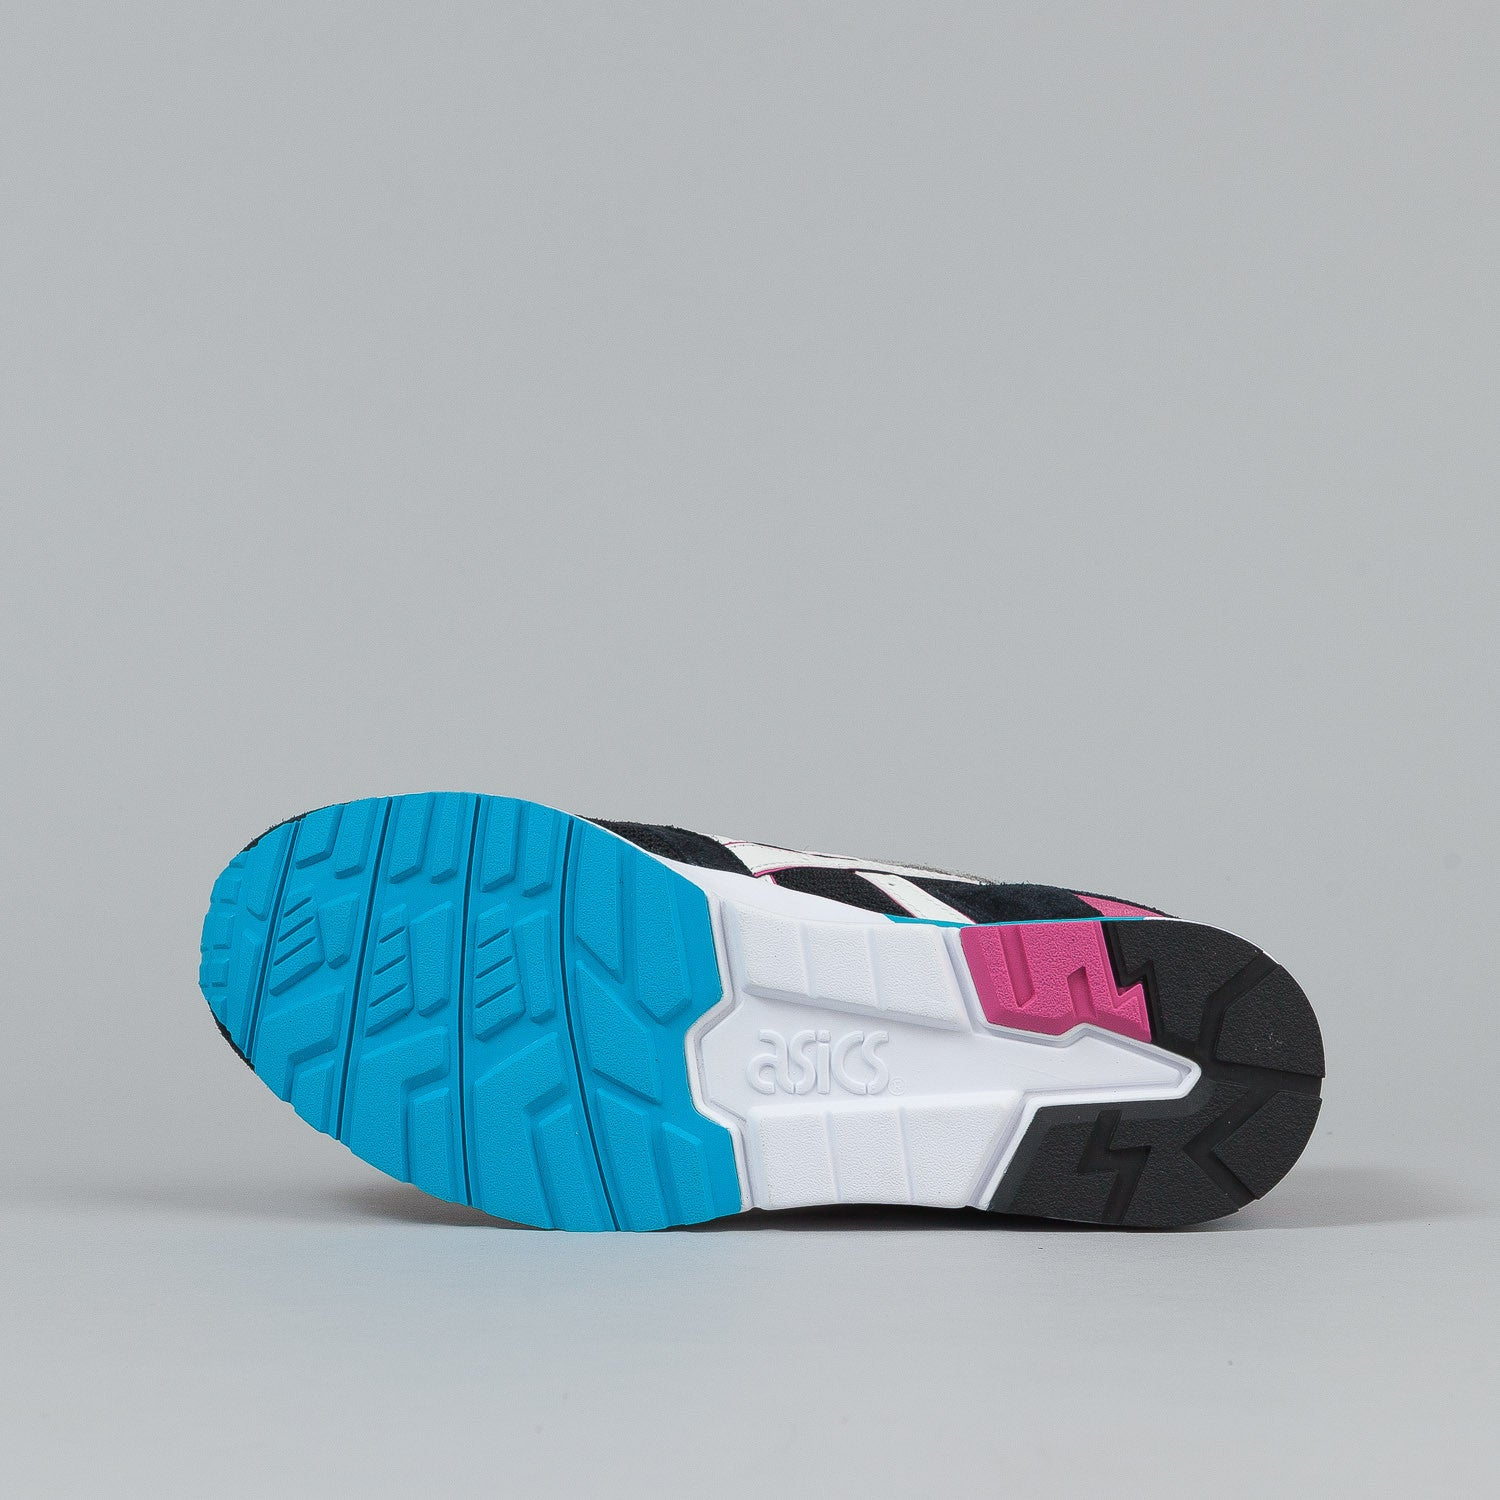 Asics Gel Lyte V Shoes - Black / White / Light Blue / Pink